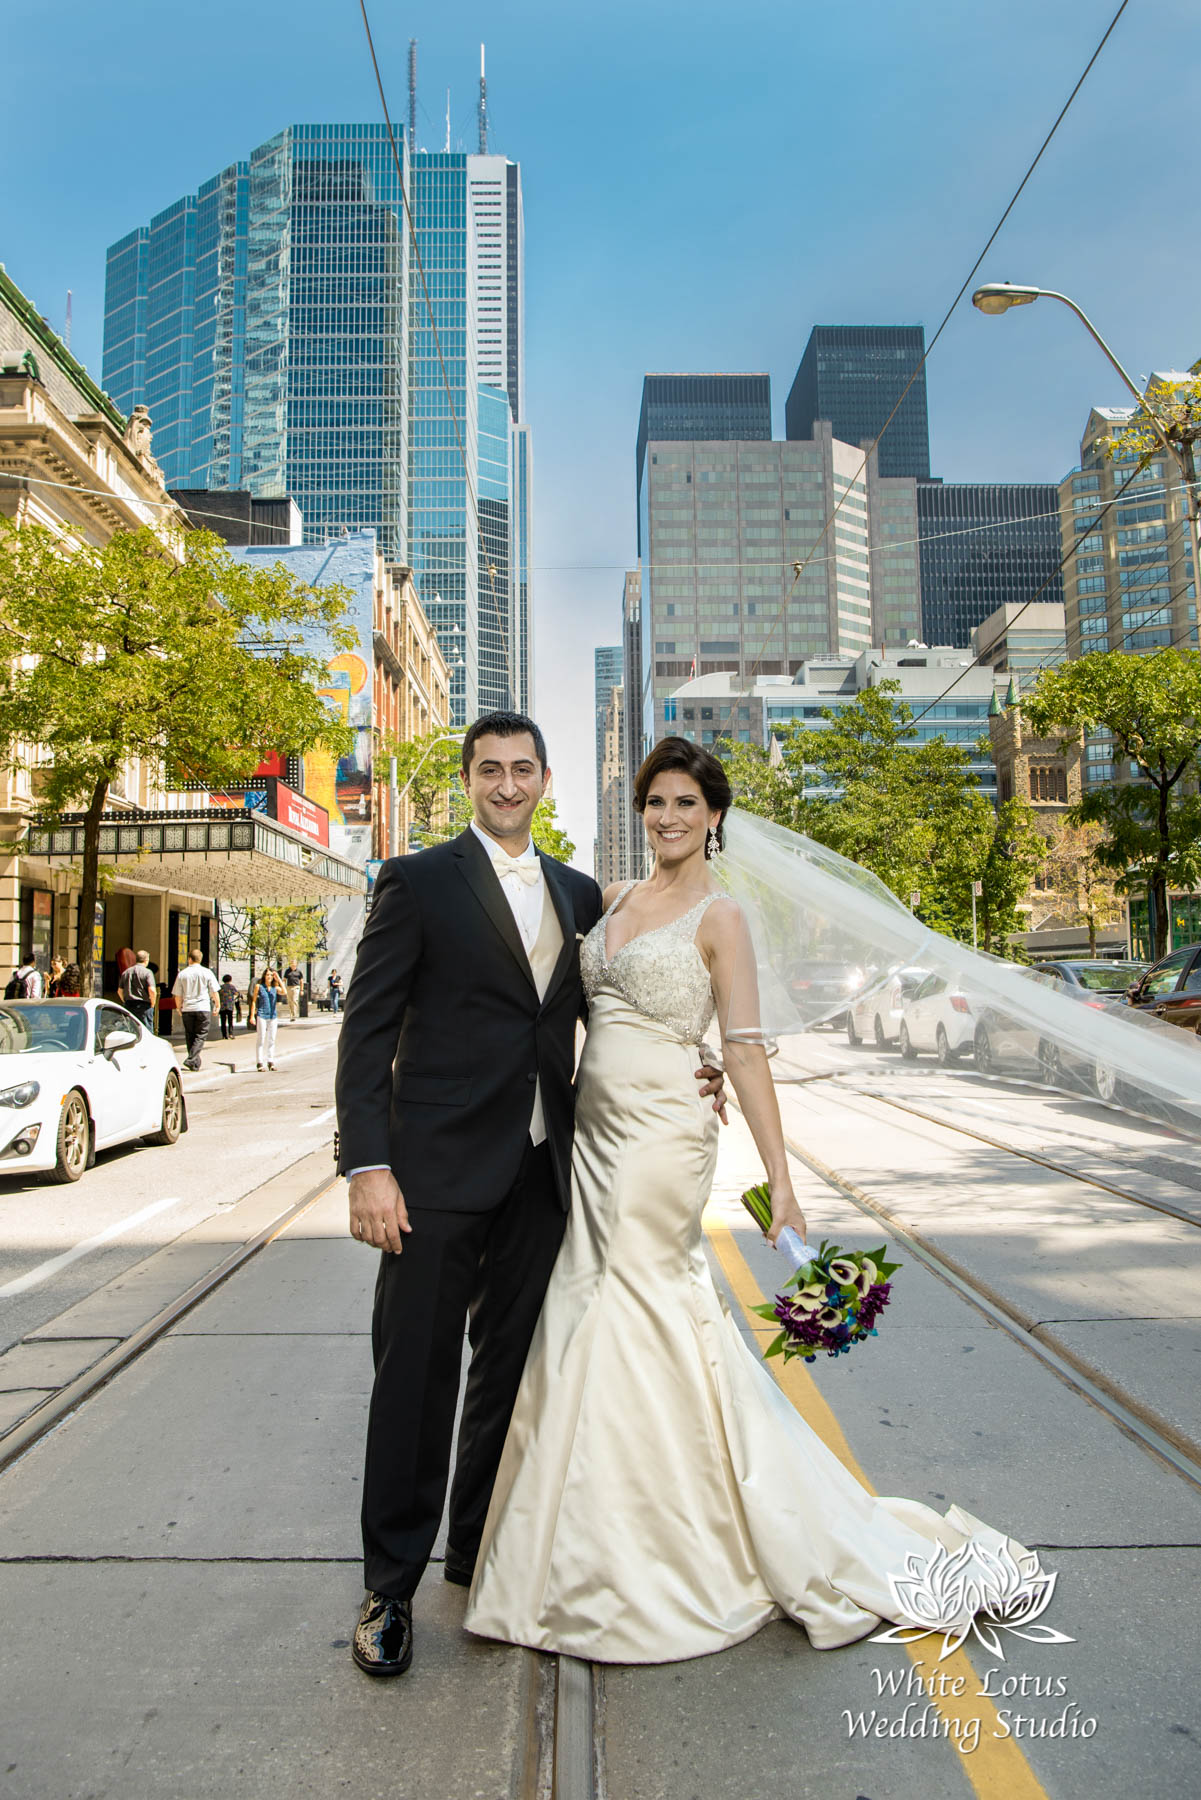 081 - Wedding - Toronto - Downtown wedding photo-walk - PW